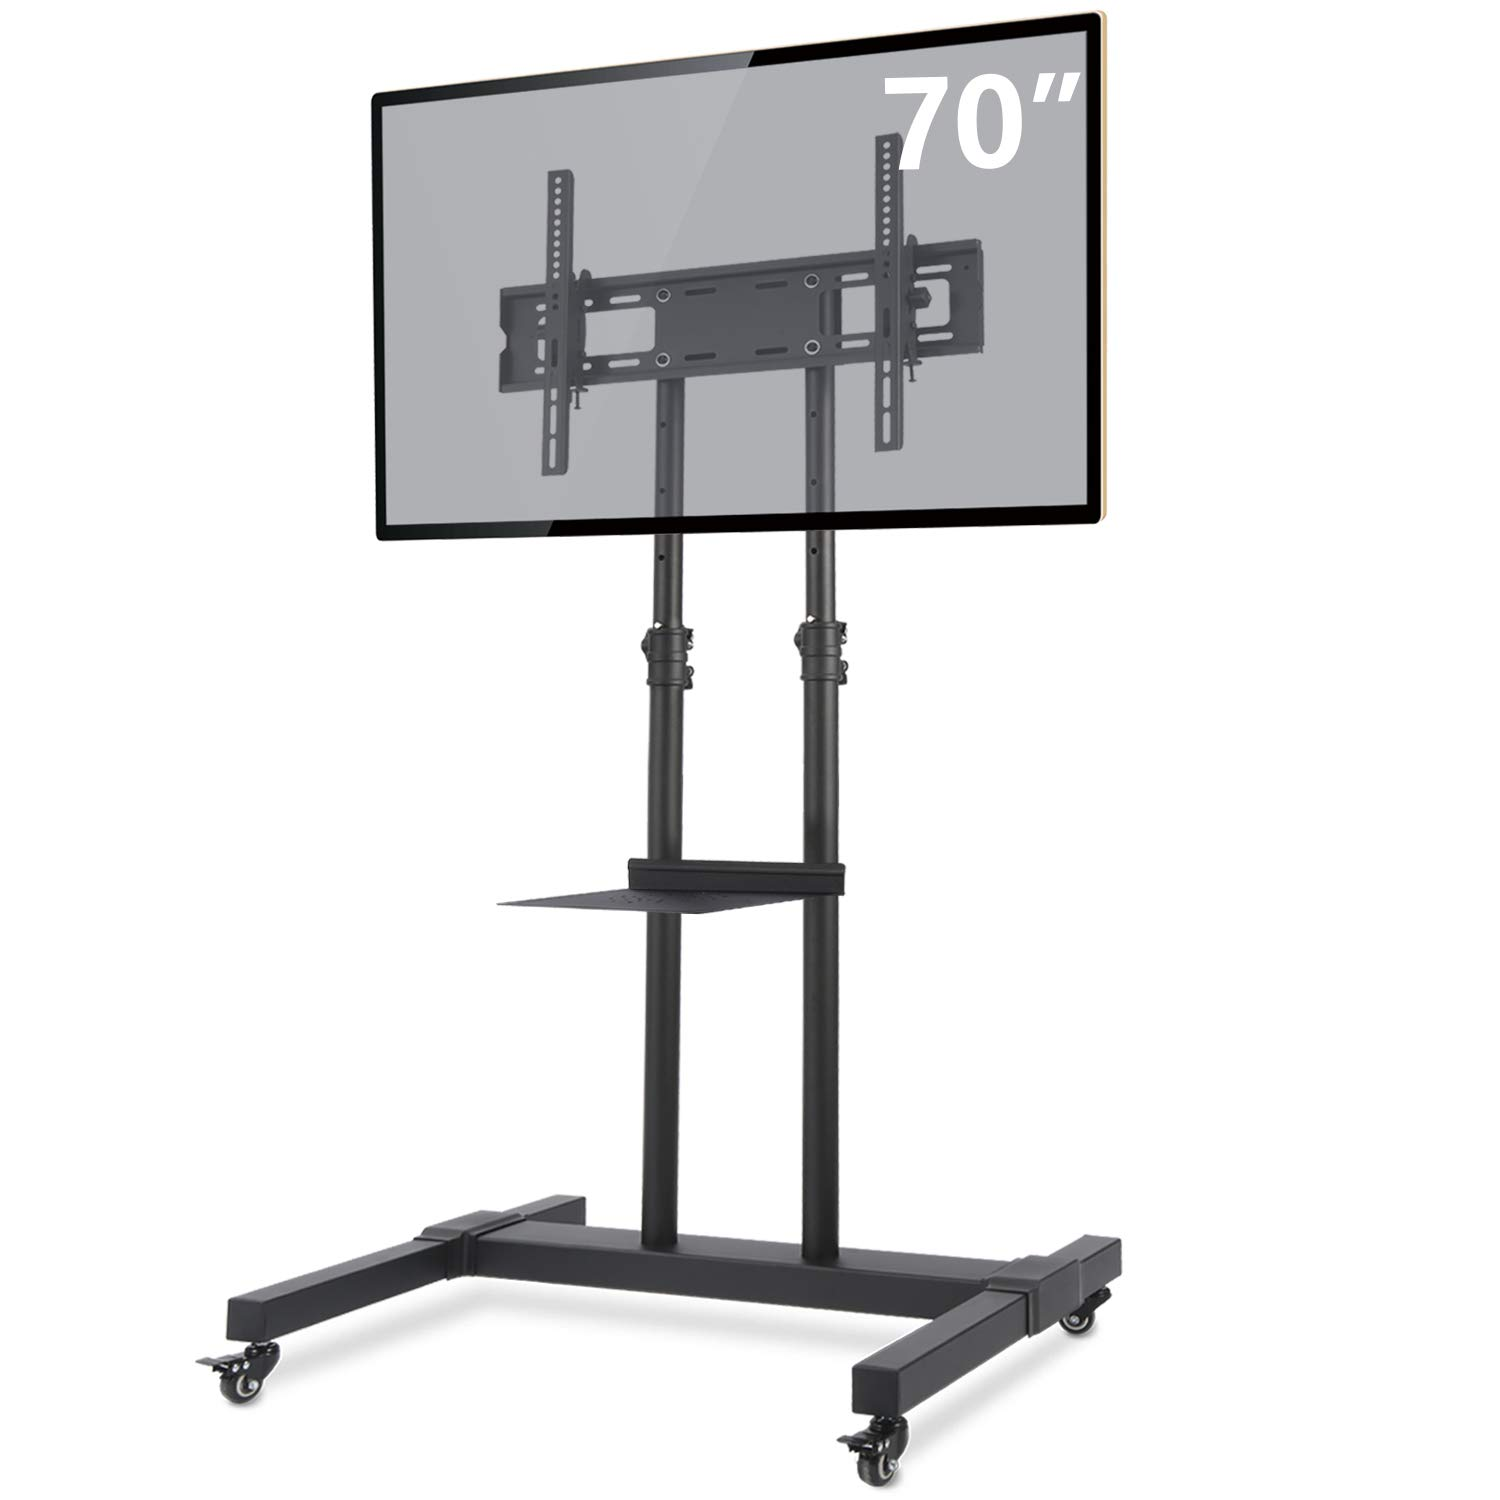 TAVR Mobile TV Stand Rolling TV Cart Floor Stand with Mount on Lockable Wheels Height Adjustable Shelf for 32-70 inch Flat Screen or Curved TVs Monitors Display Trolley Stand Loading 110lbs MT1001 by TAVR Furniture